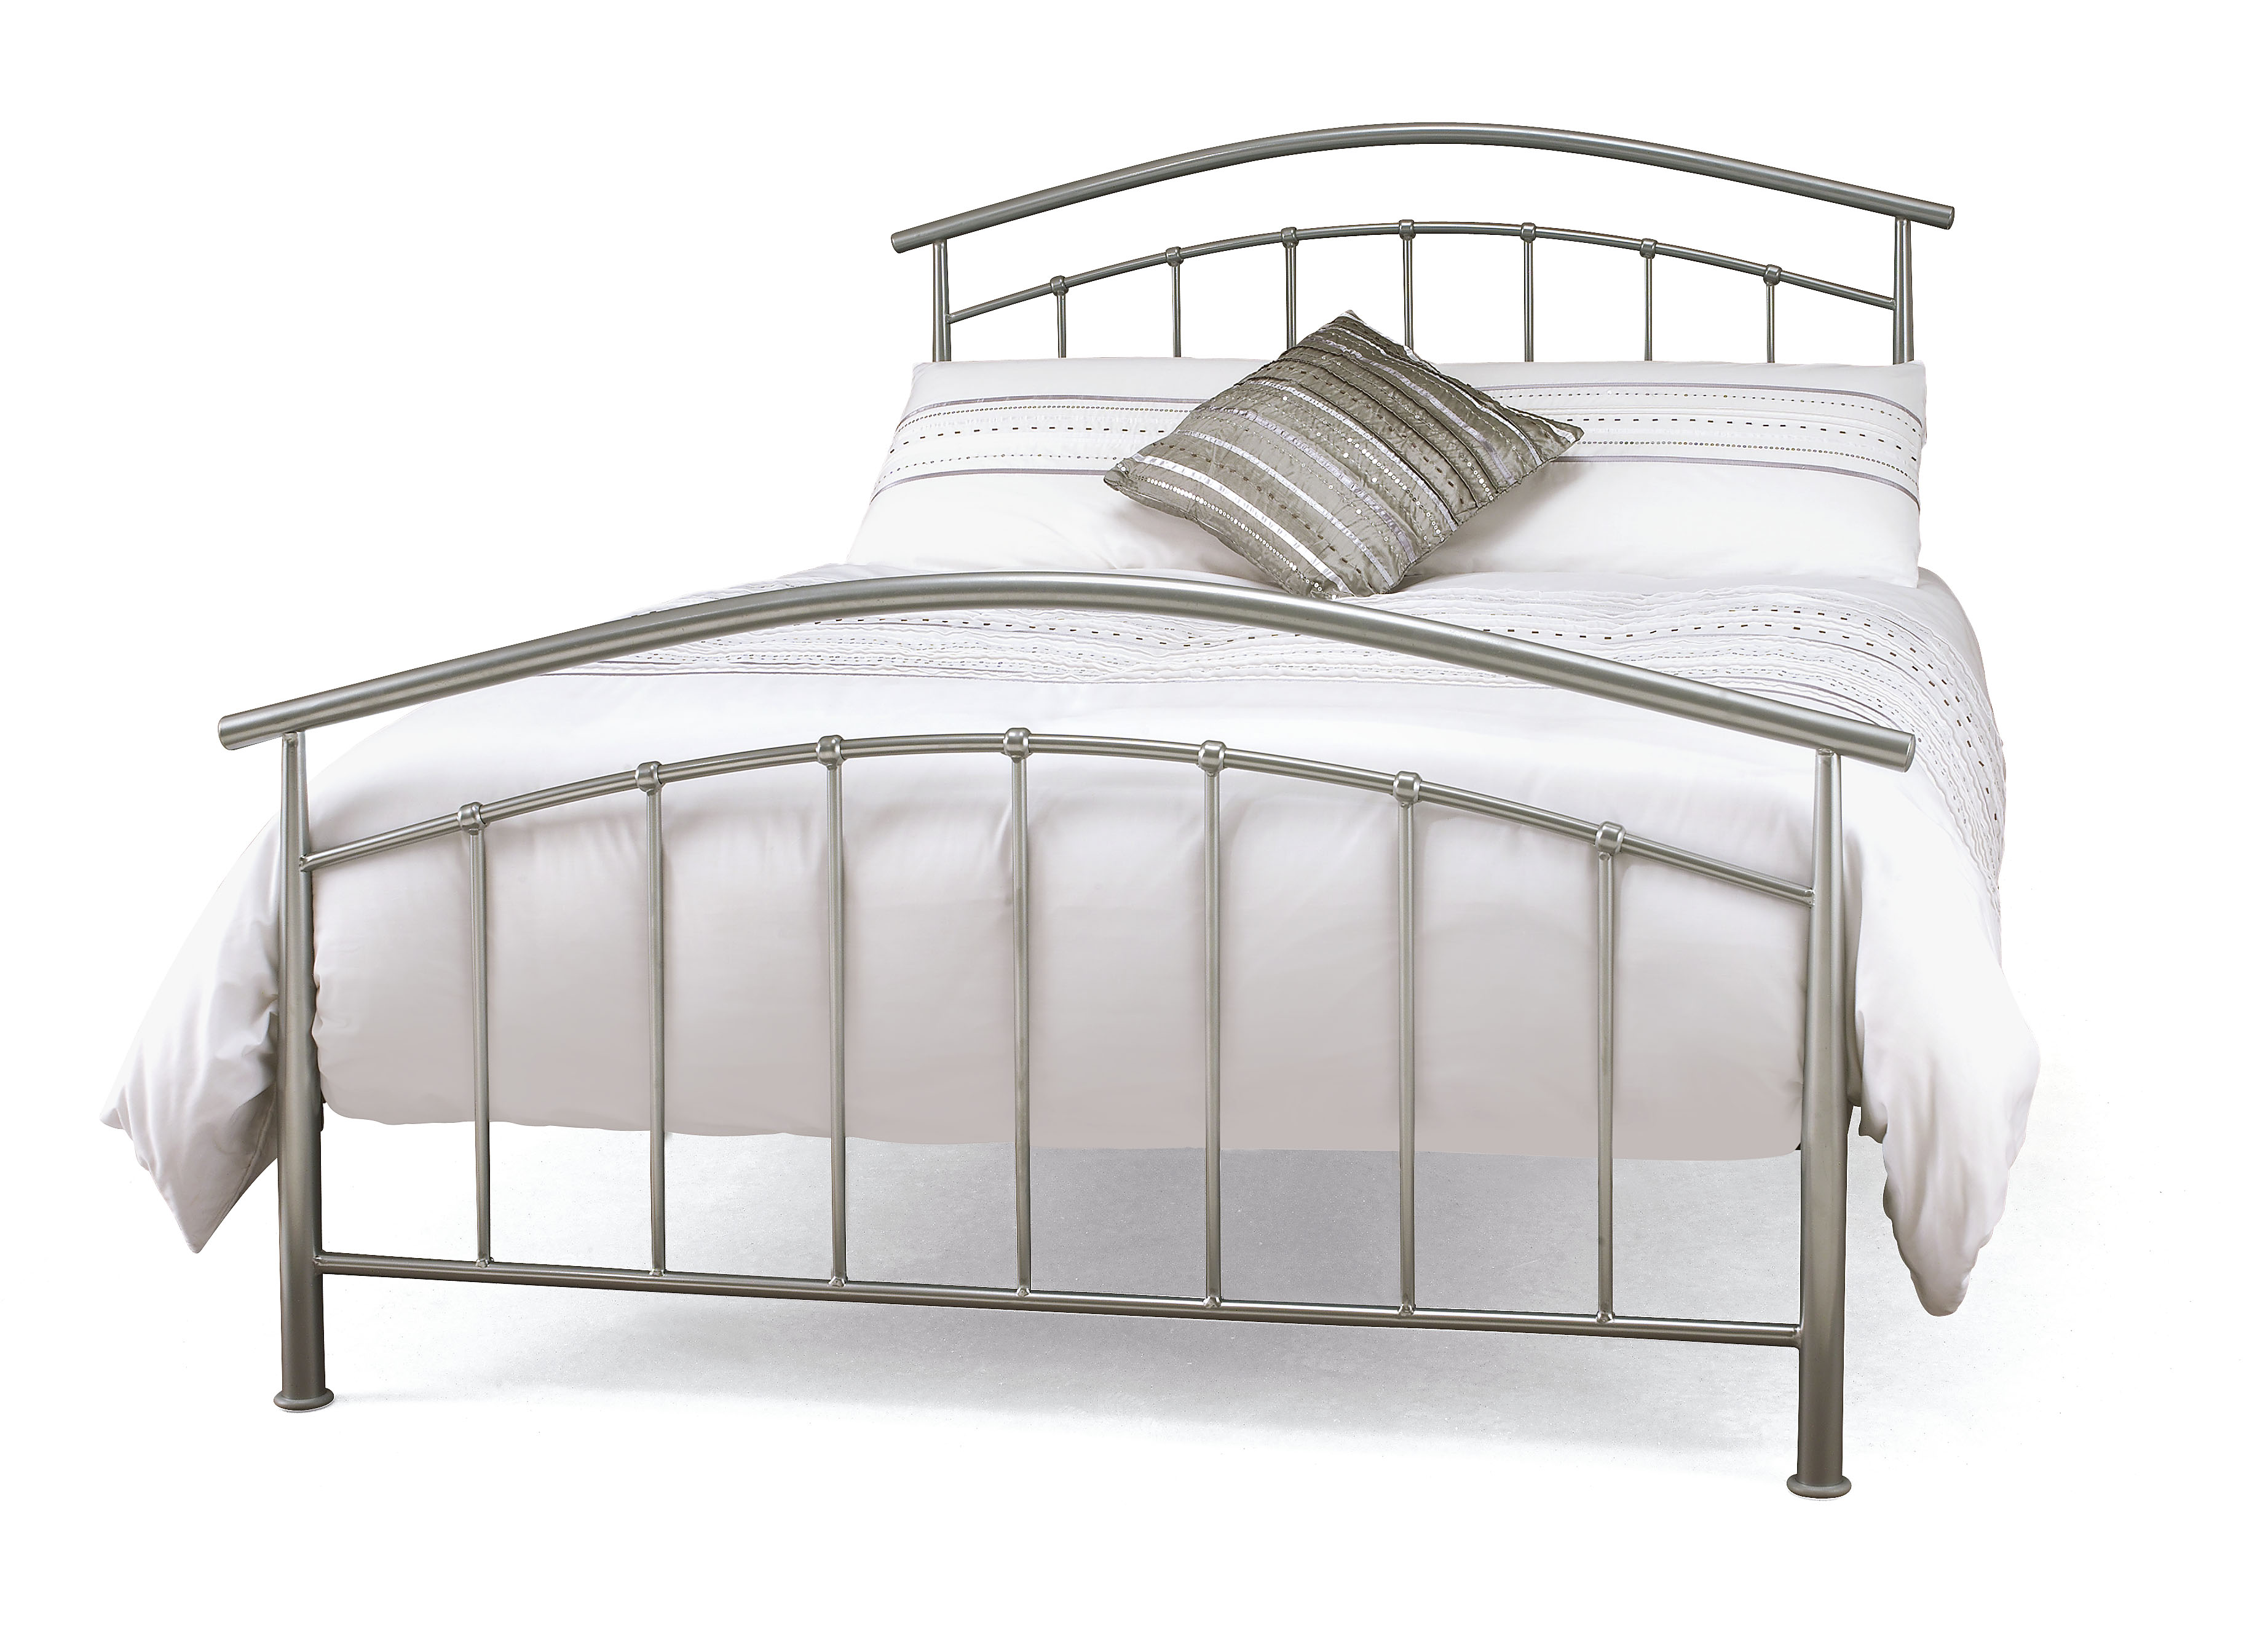 Serene Mercury Pearl Silver Metal Frame Bed 99 Beds Direct Warehouse Gainsborough Lincolnshire